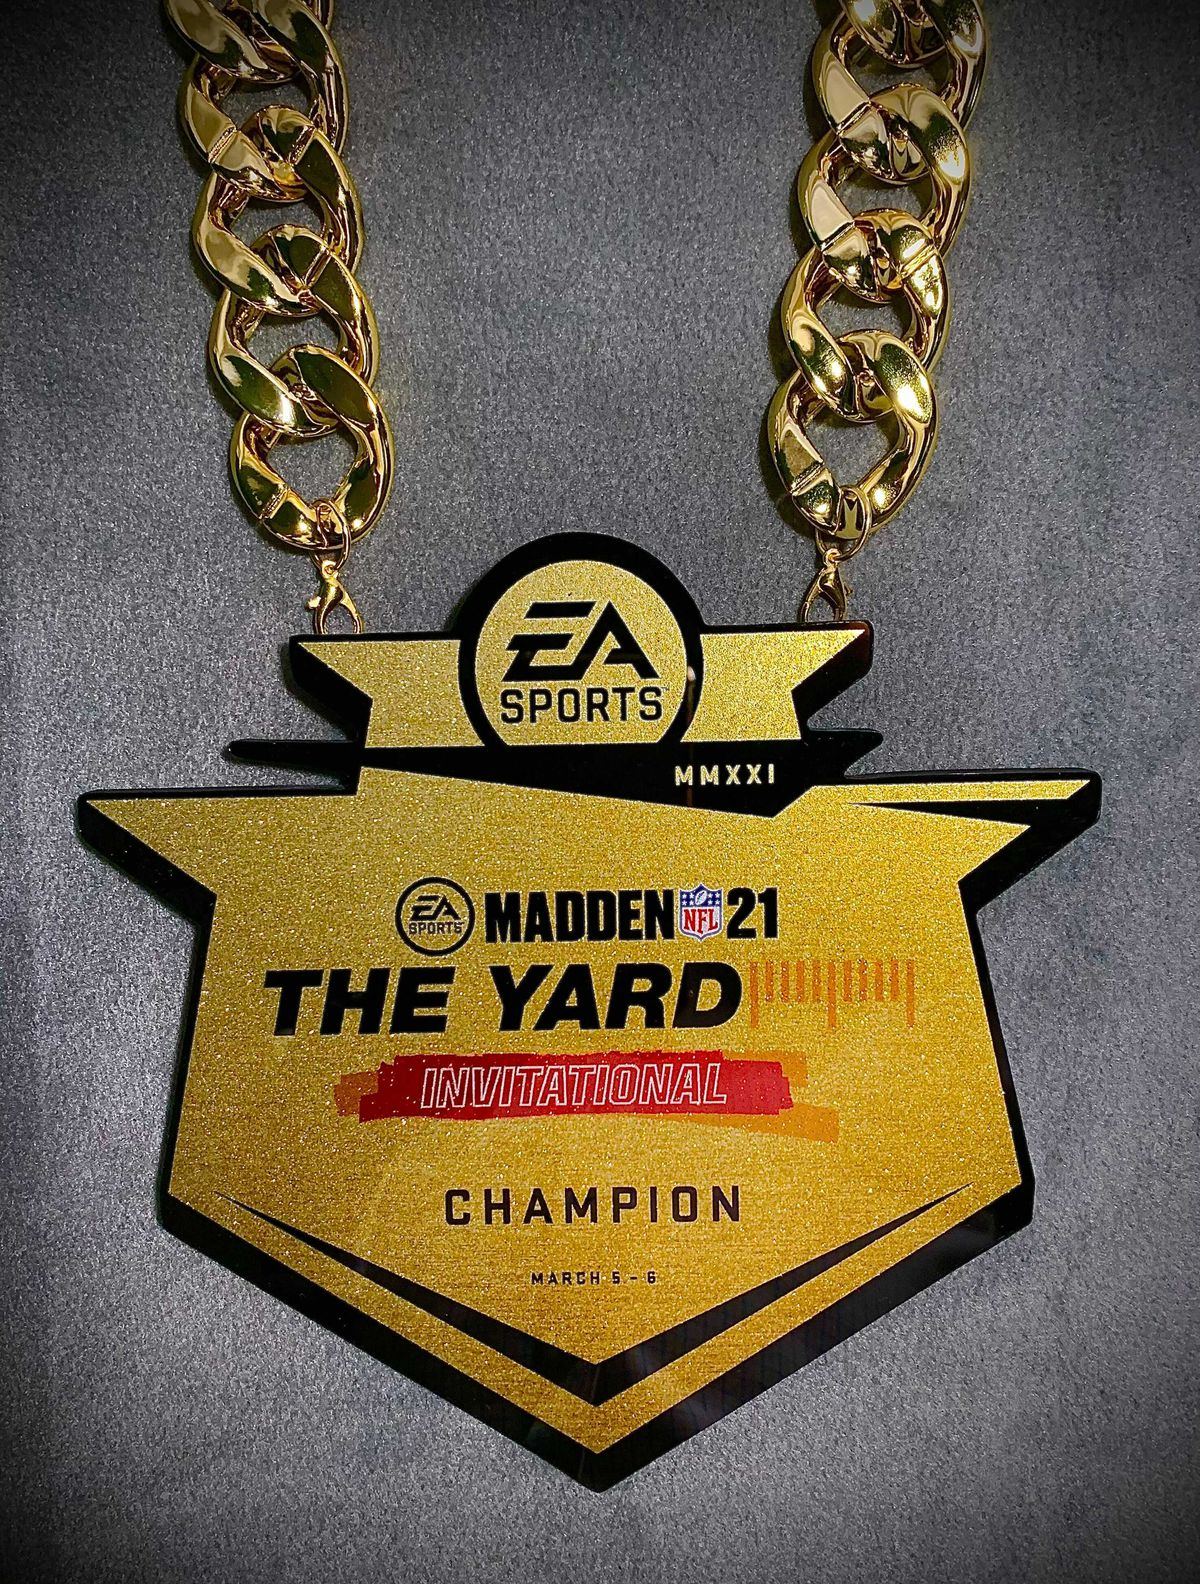 Image of a garish, electroplated gold chain and medallion for the winner of the Madden NFL 21 The Yard Invitational